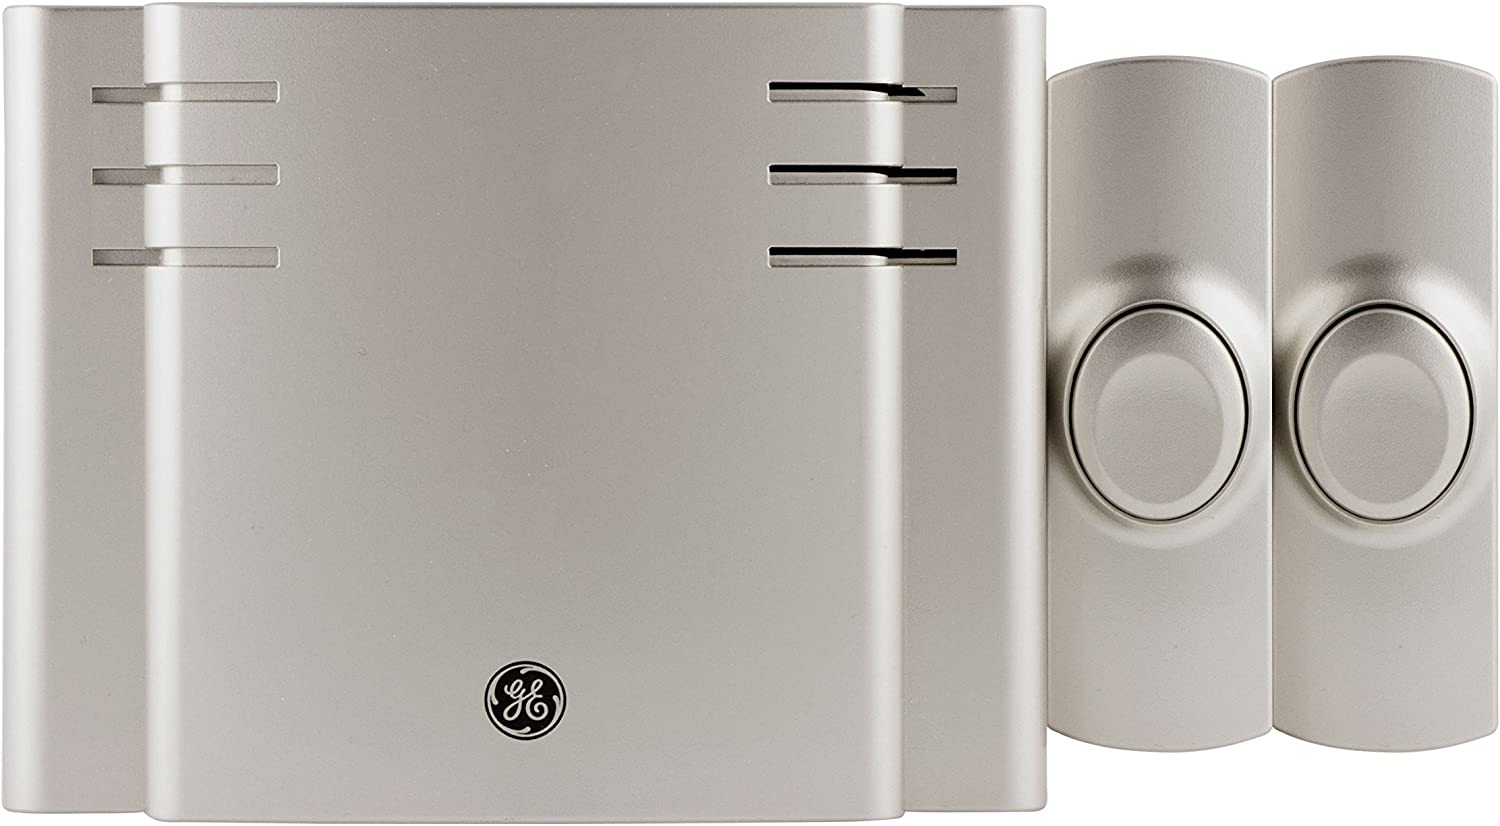 GE Wireless Doorbell Kit, 8 Melodies, 1 Receiver, 2 Push Buttons